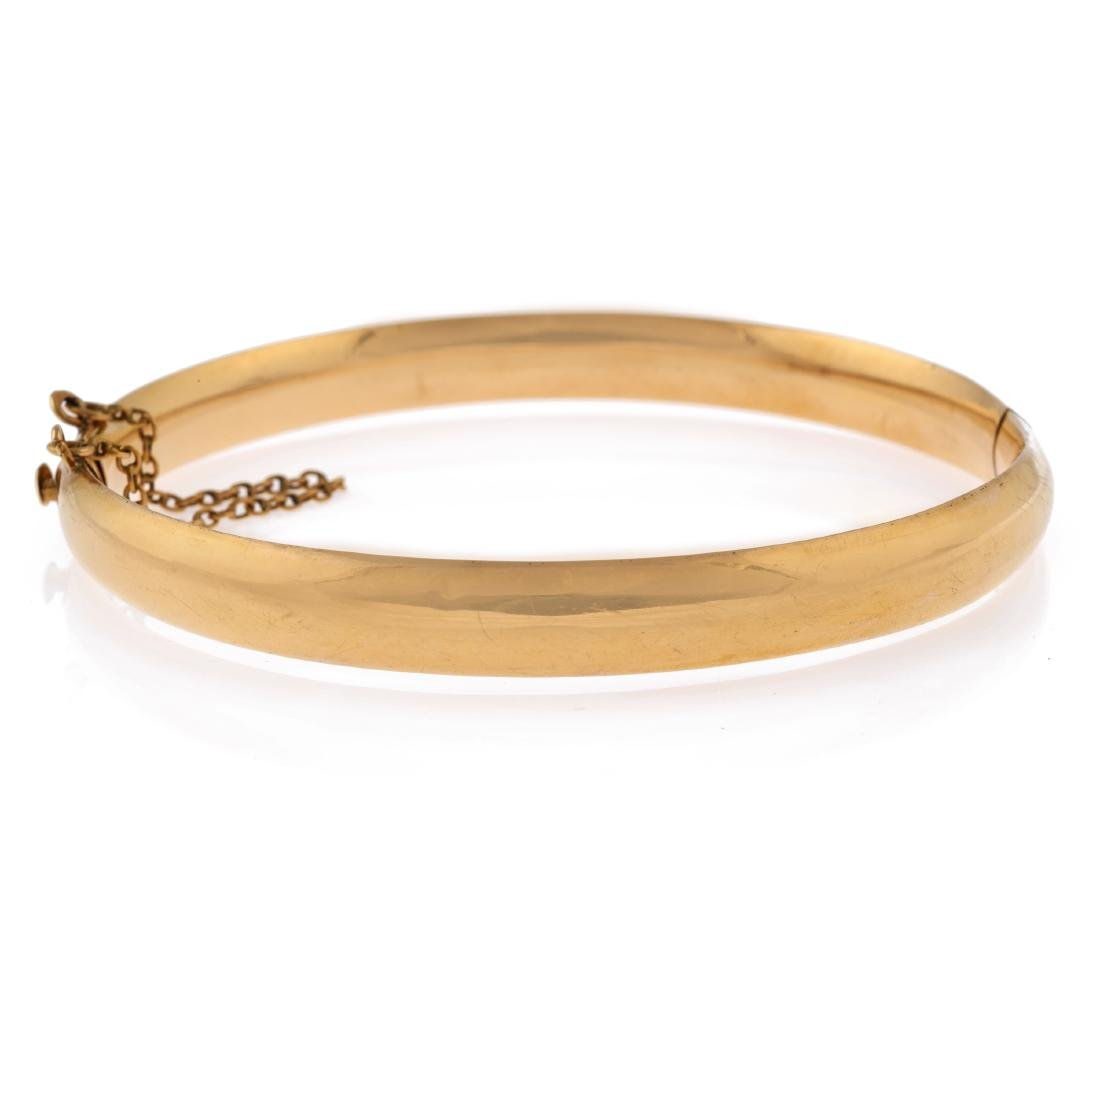 A 14k yellow gold bangle bracelet